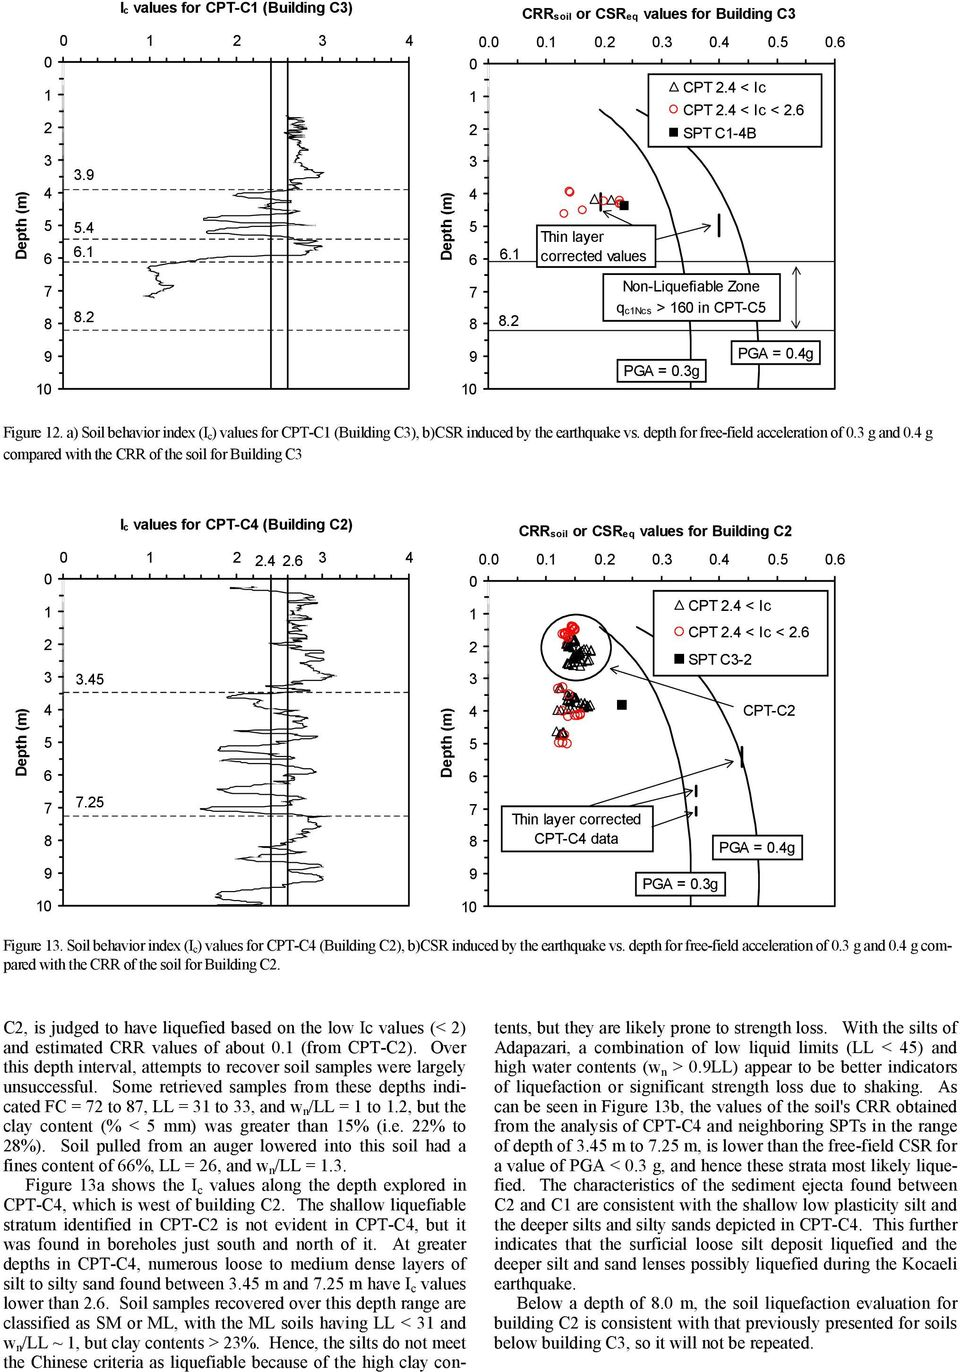 g compared with the CRR of the soil for Building C Ic values for CPT-C (Building C)... CRRsoil or CSReq values for Building C....... CPT. < Ic CPT. < Ic <. SPT C- CPT-C.